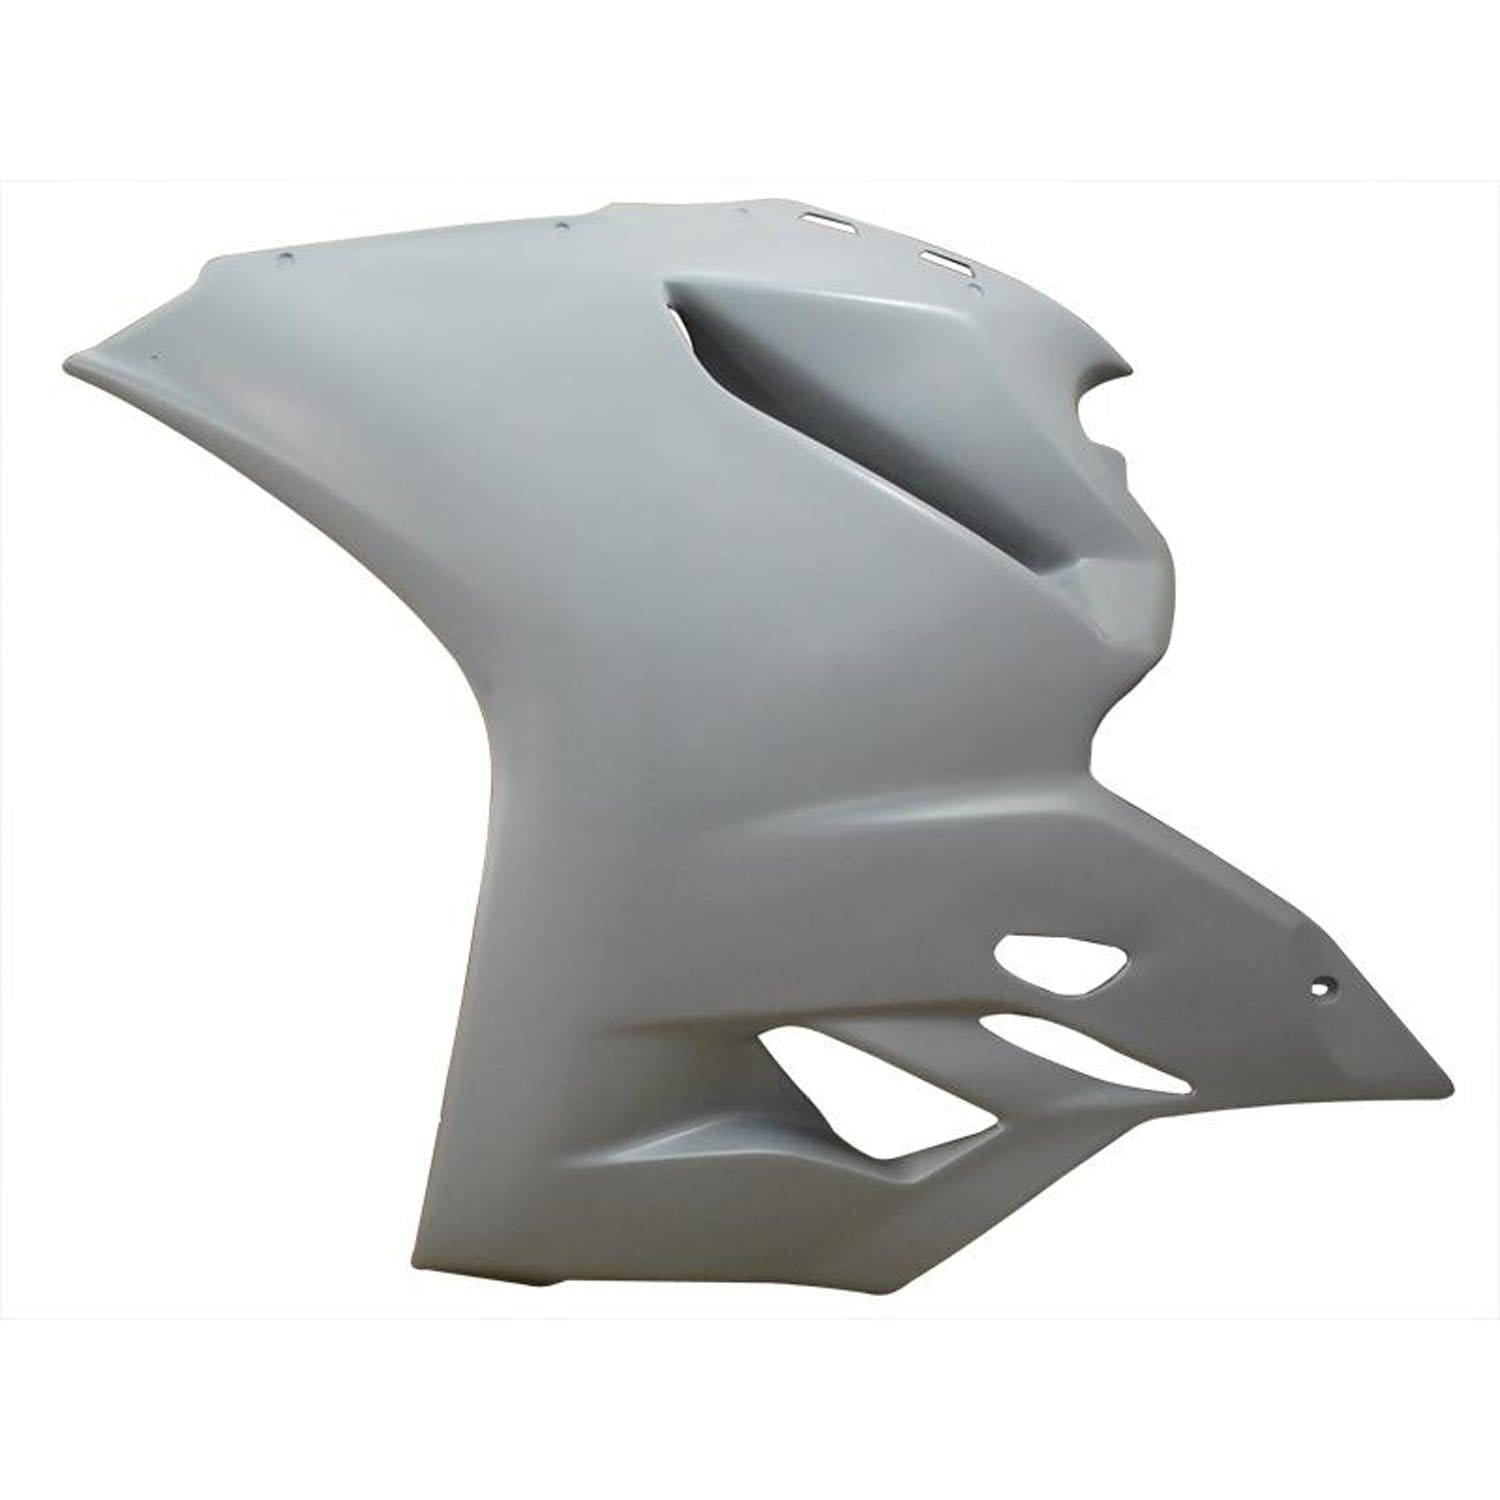 Ducati 1199 Panigale Upper Fairing Left Panel- Pro Series - Woodcraft Technologies - Motorcycle Parts